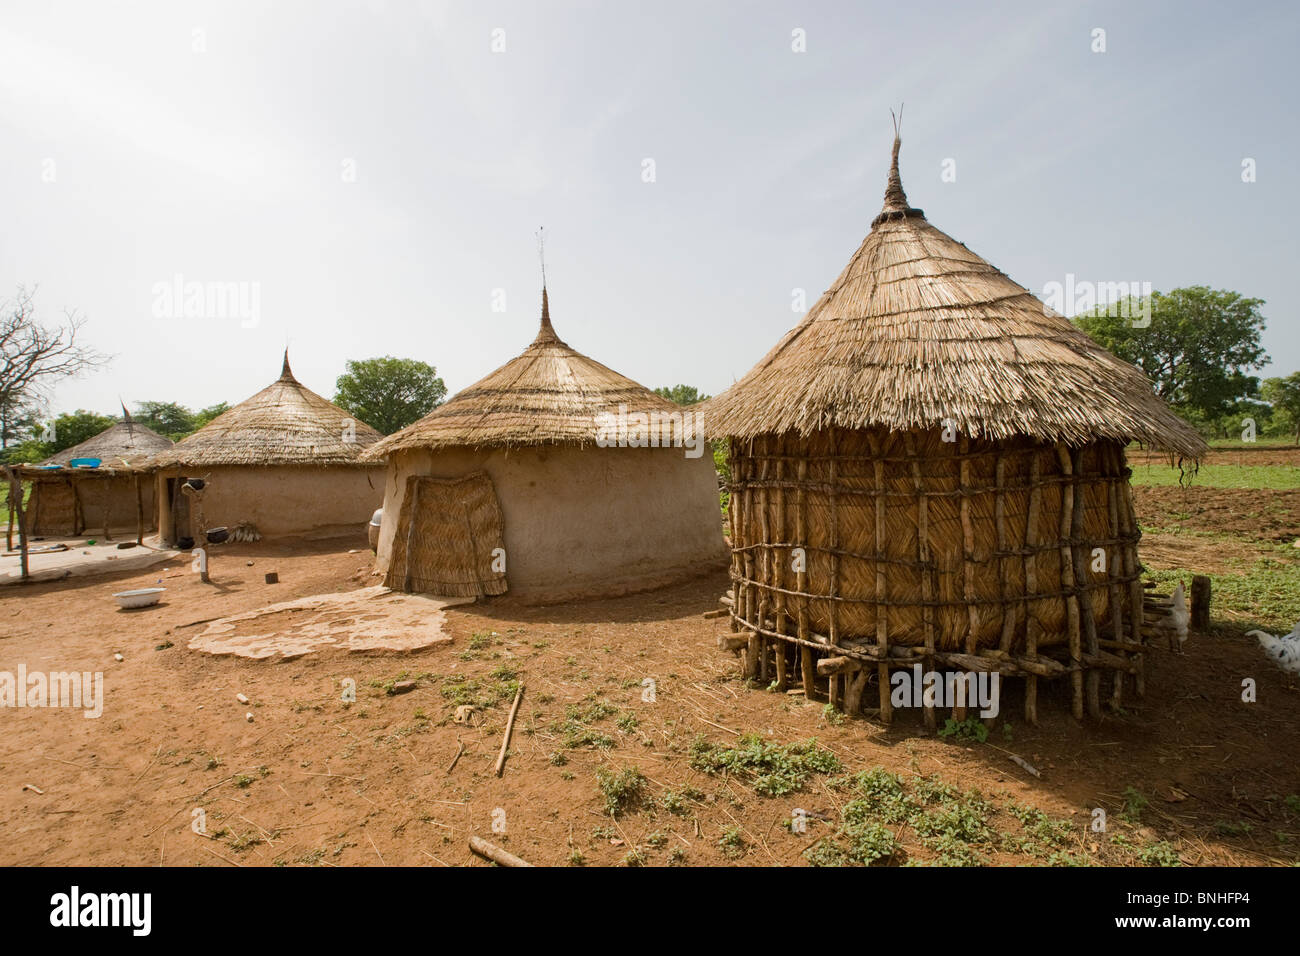 Food store in a Fulani household in the village of Sor No. 1, Gonja triangle, Damango district, Ghana. - Stock Image